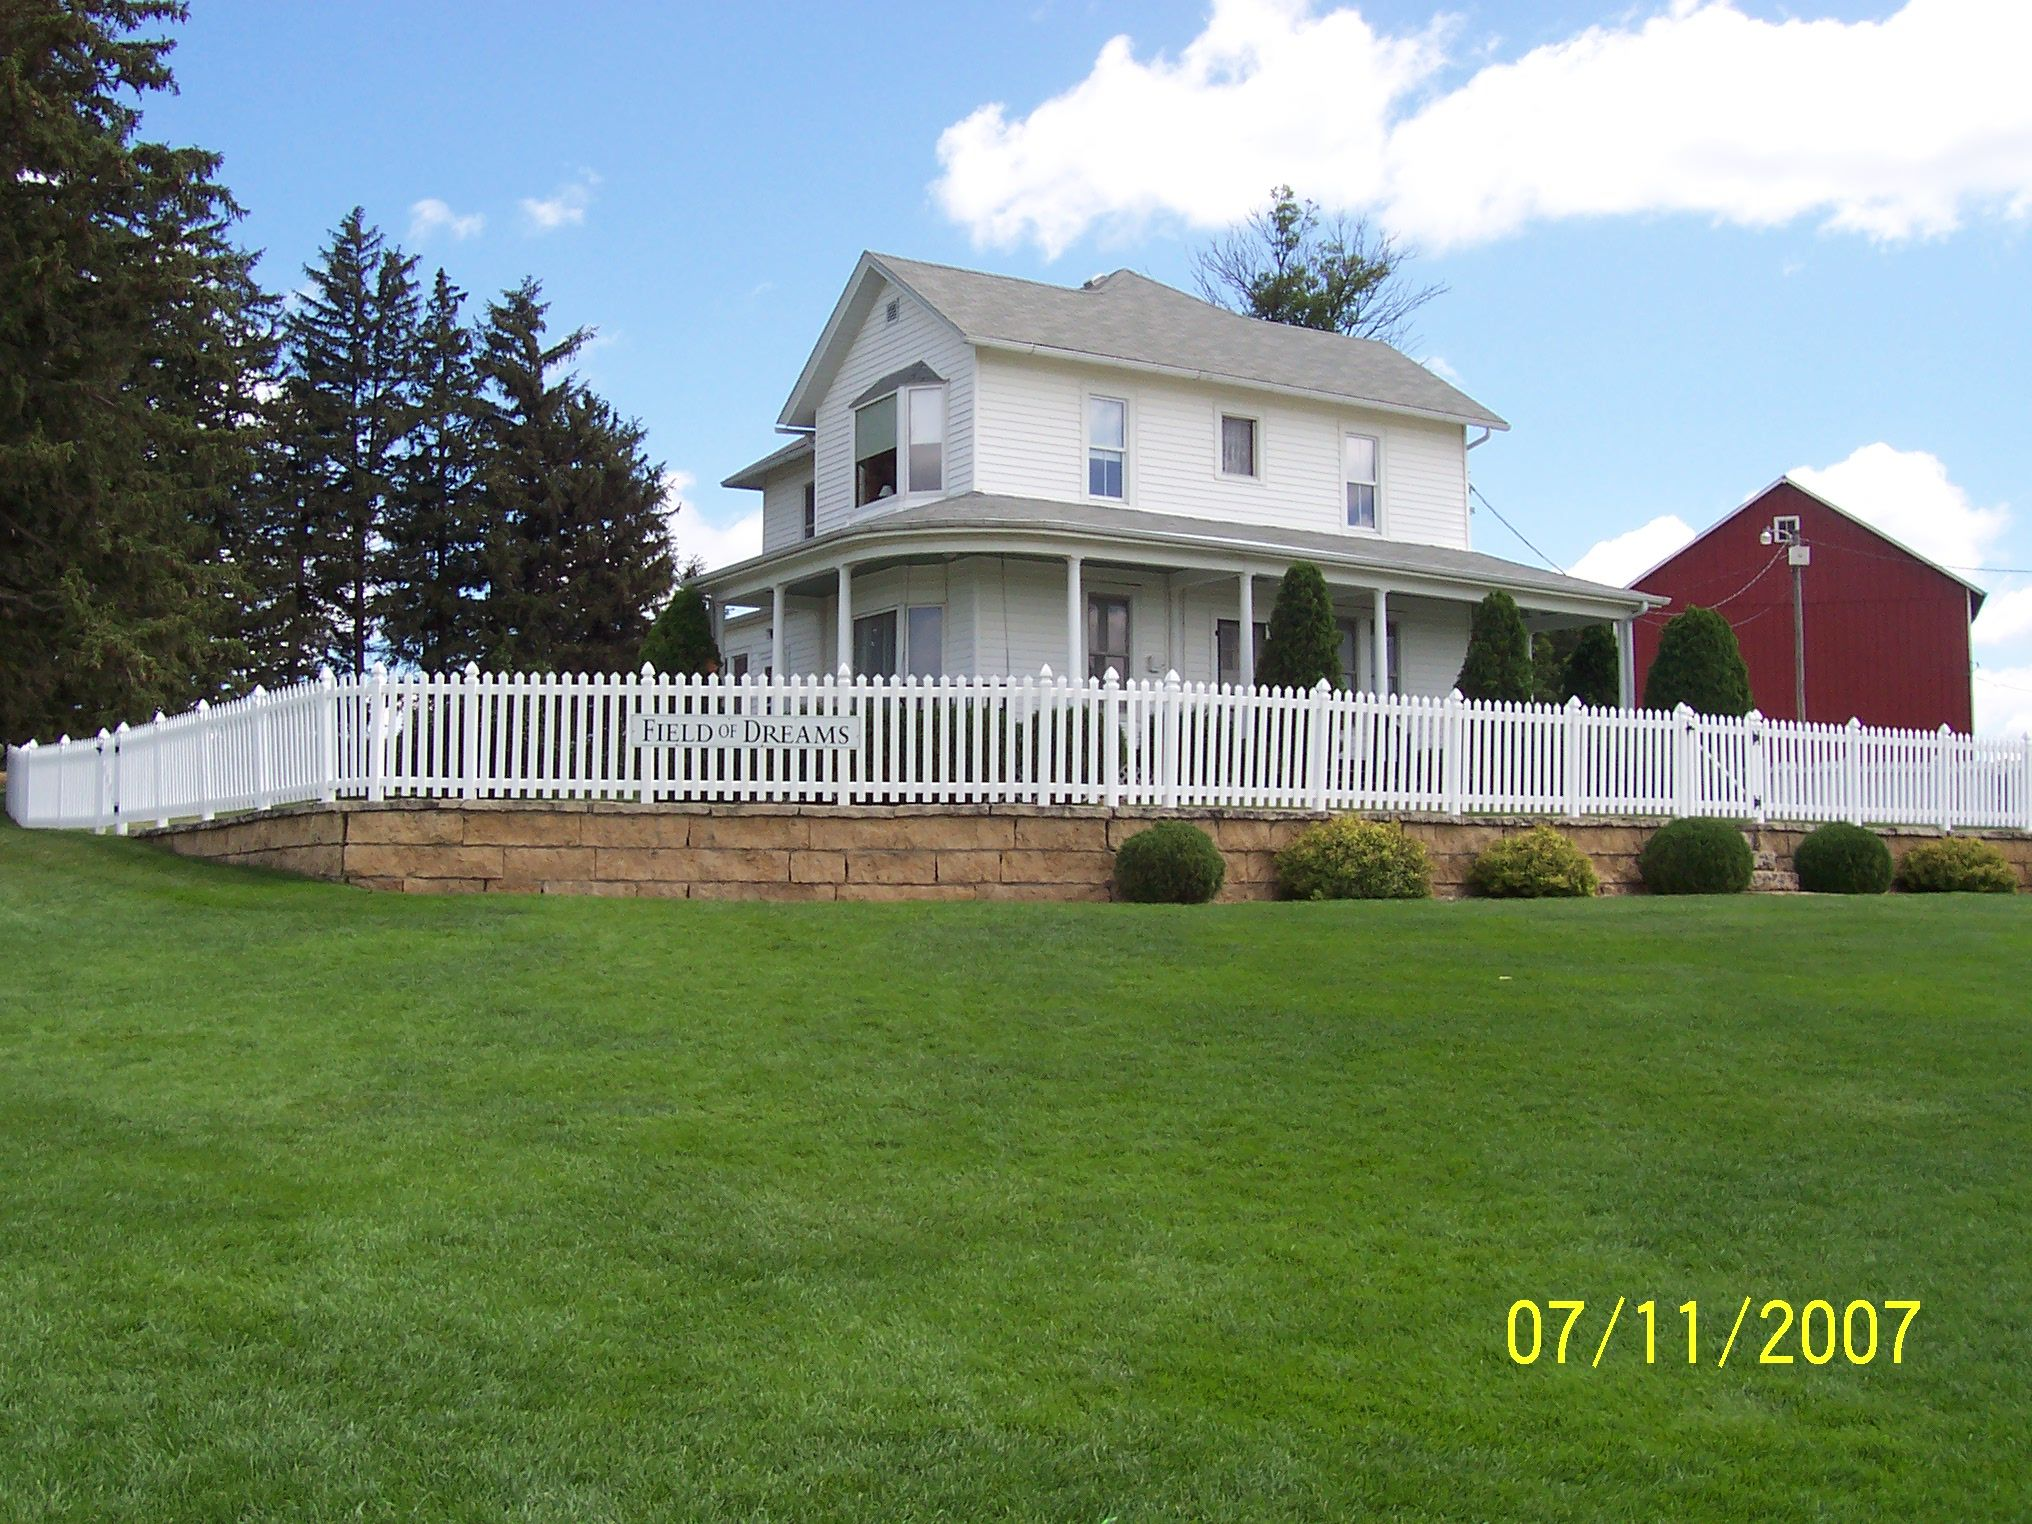 Field Of Dreams Farm House In Dyersville Iowa Travel Usa Multicityworldtravel